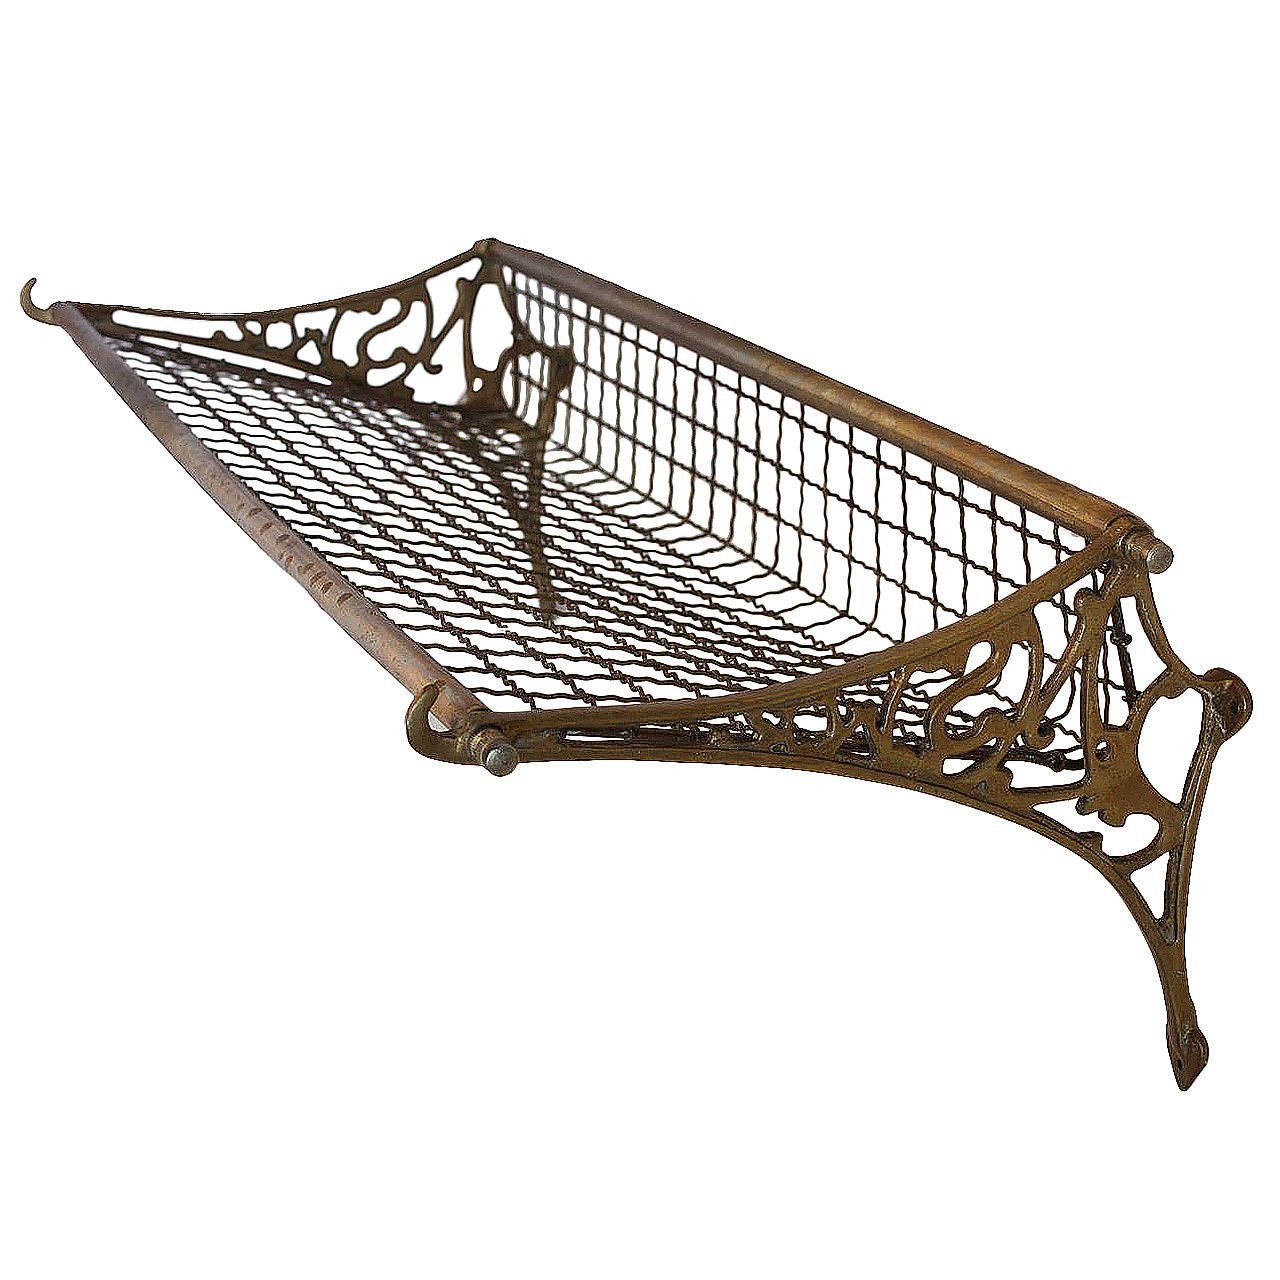 Antique Railroad Luggage Rack | Artifacts | Pinterest | Luggage ...